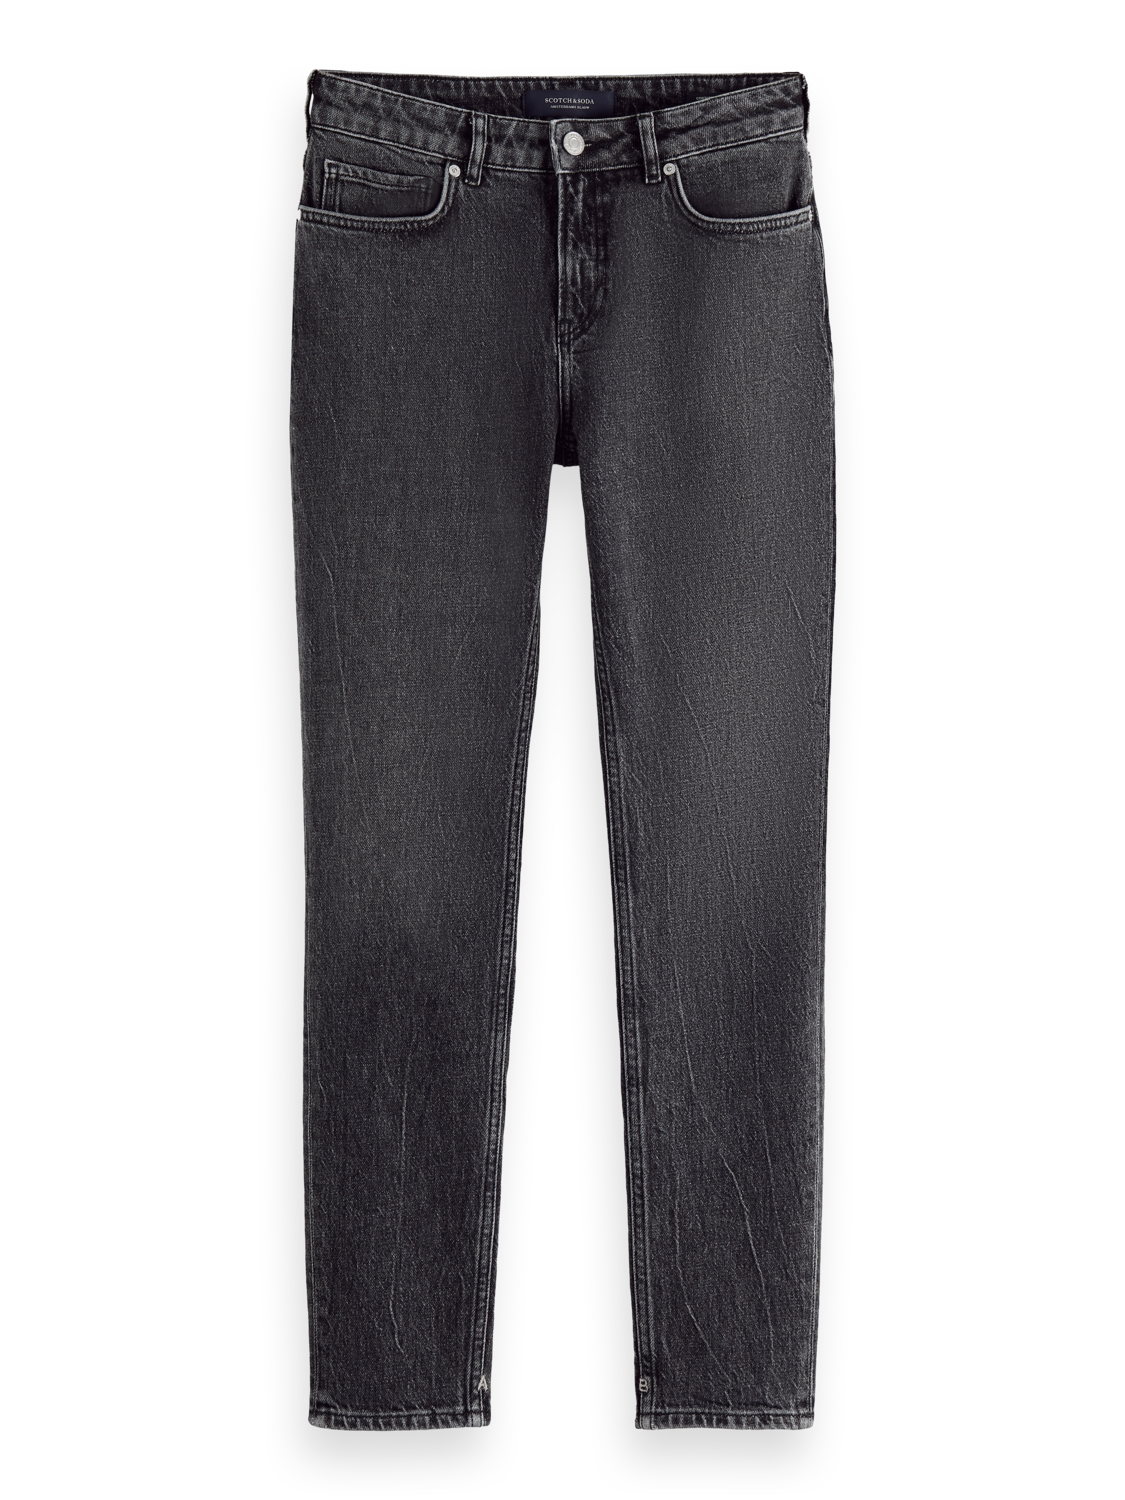 Scotch & Soda the Keeper Jeans im Slim Fit – Final Act